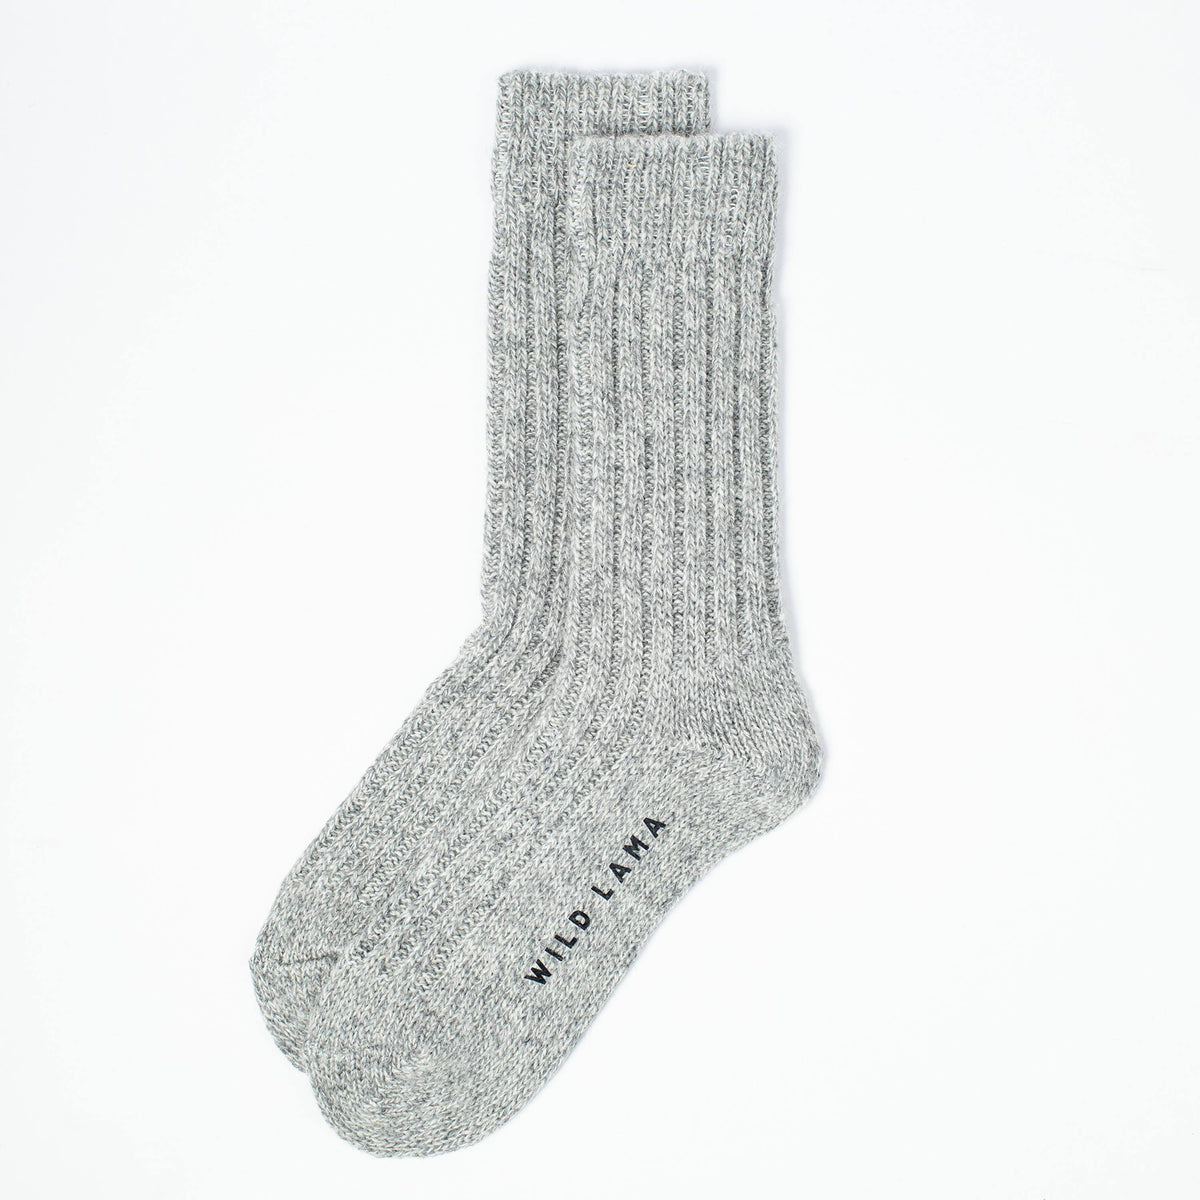 Merino Wool Socks Women - Light Gray